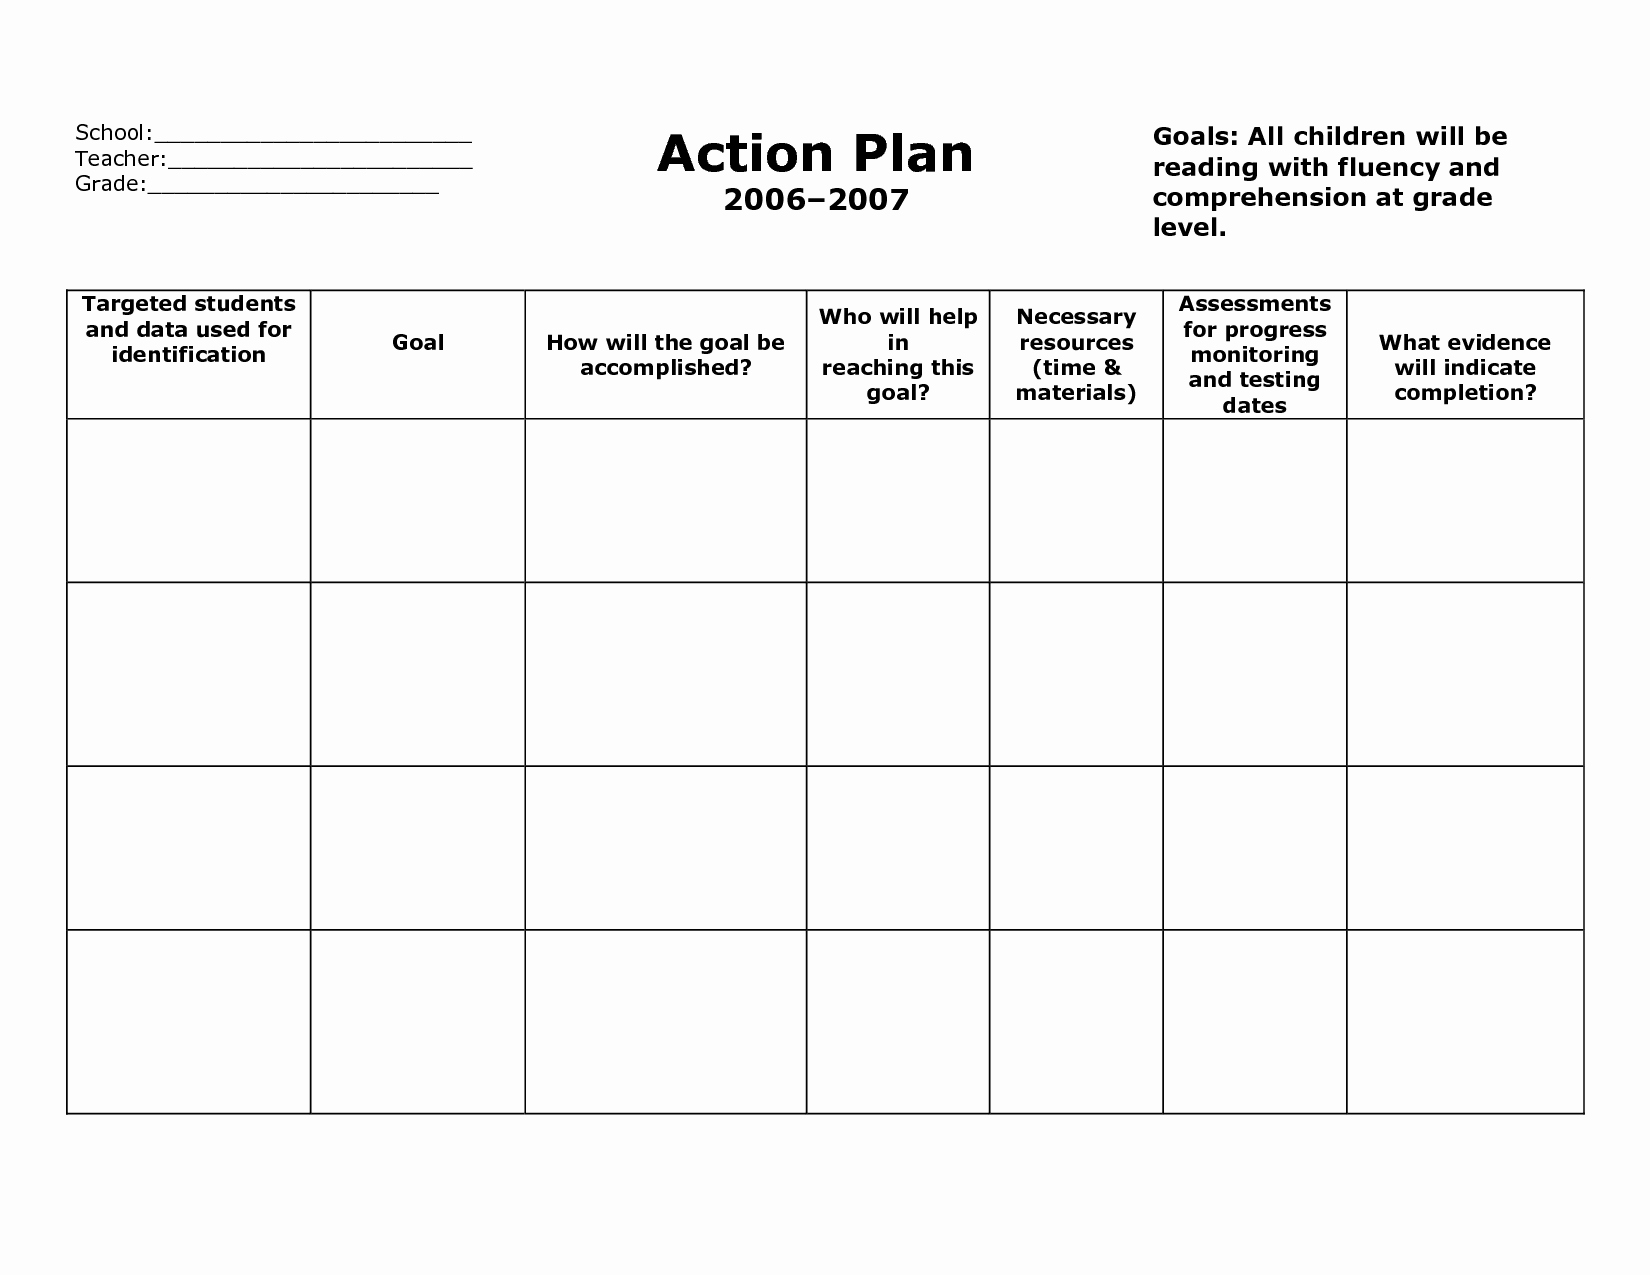 Smart Action Plans Template Inspirational Action Plan Template Action Plan format V5fclyv5